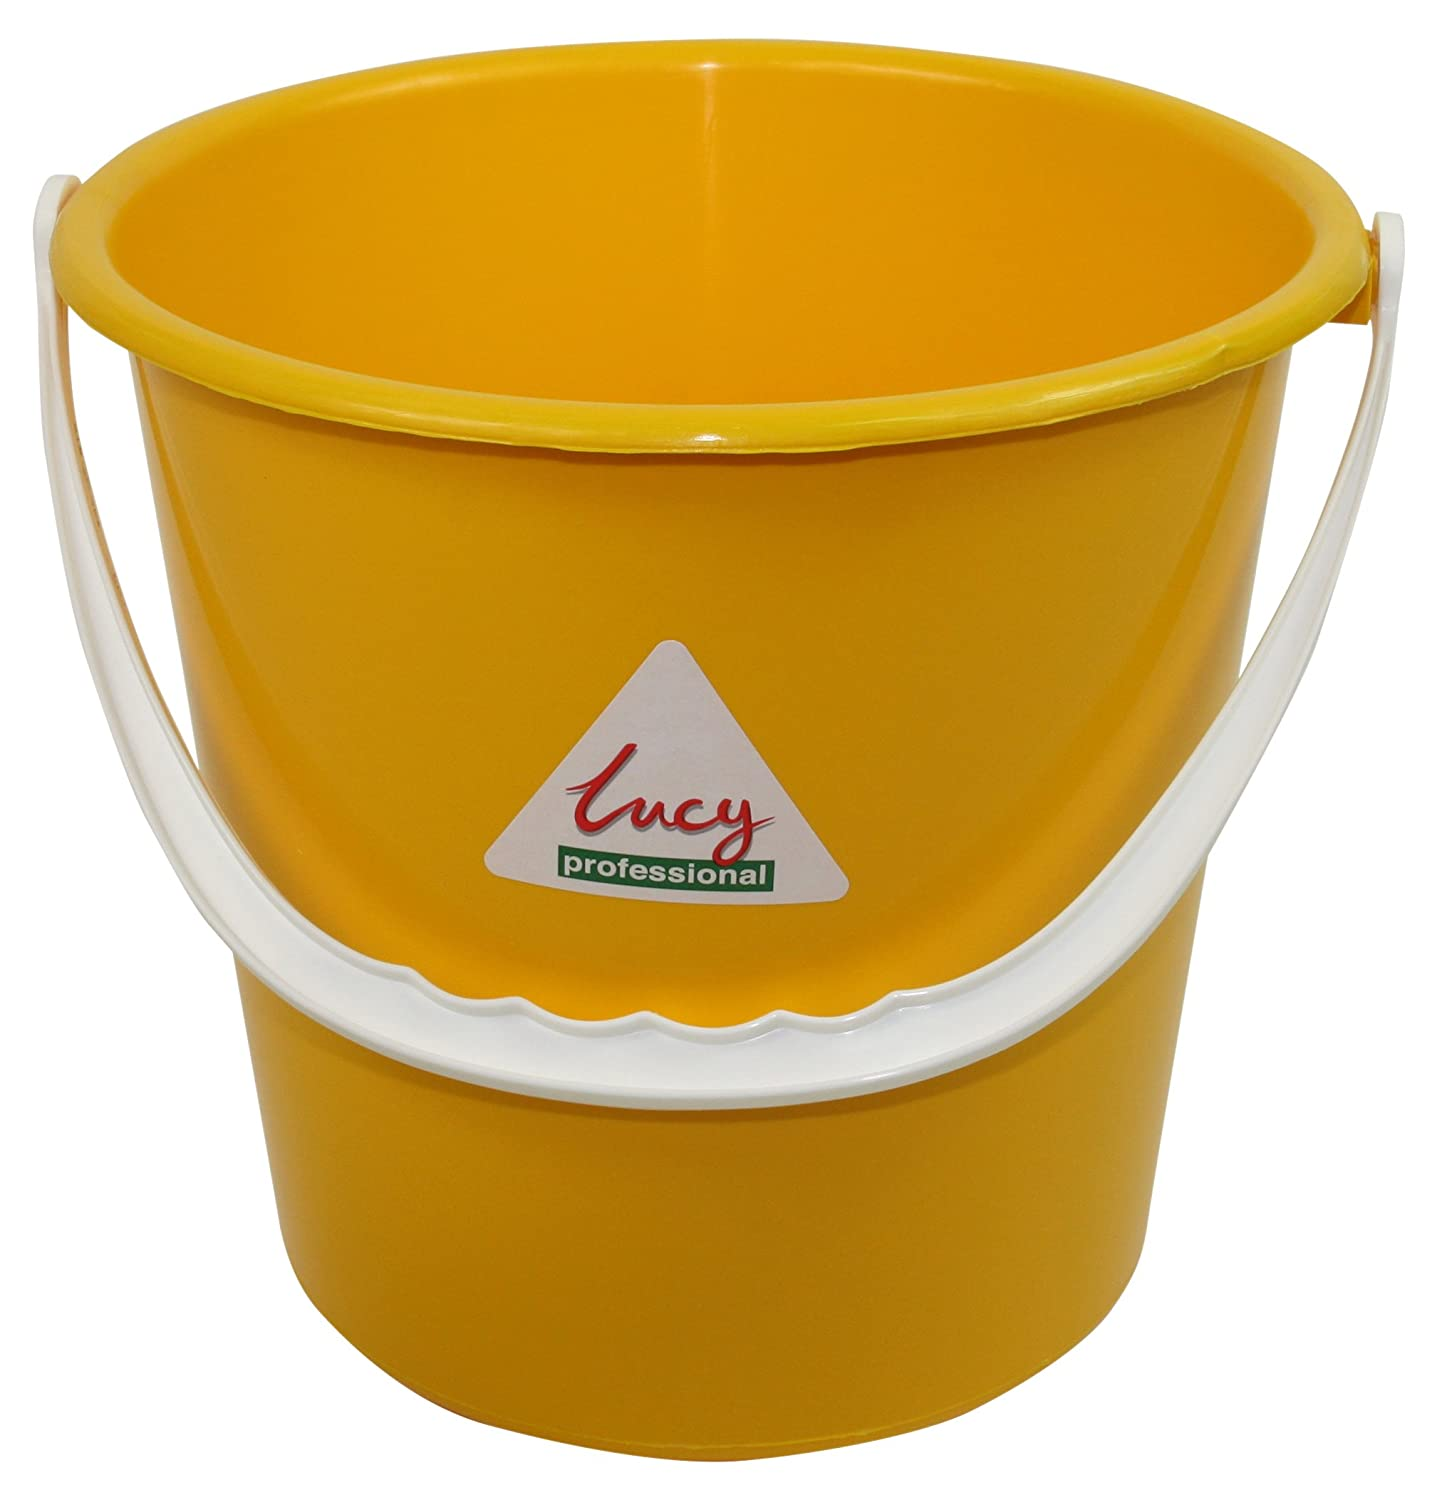 SYR L1414294 Lucy Polypropylene Colour Bucket, 10 L Capacity, Yellow (Pack of 5) SYR Benelux V.O.F.